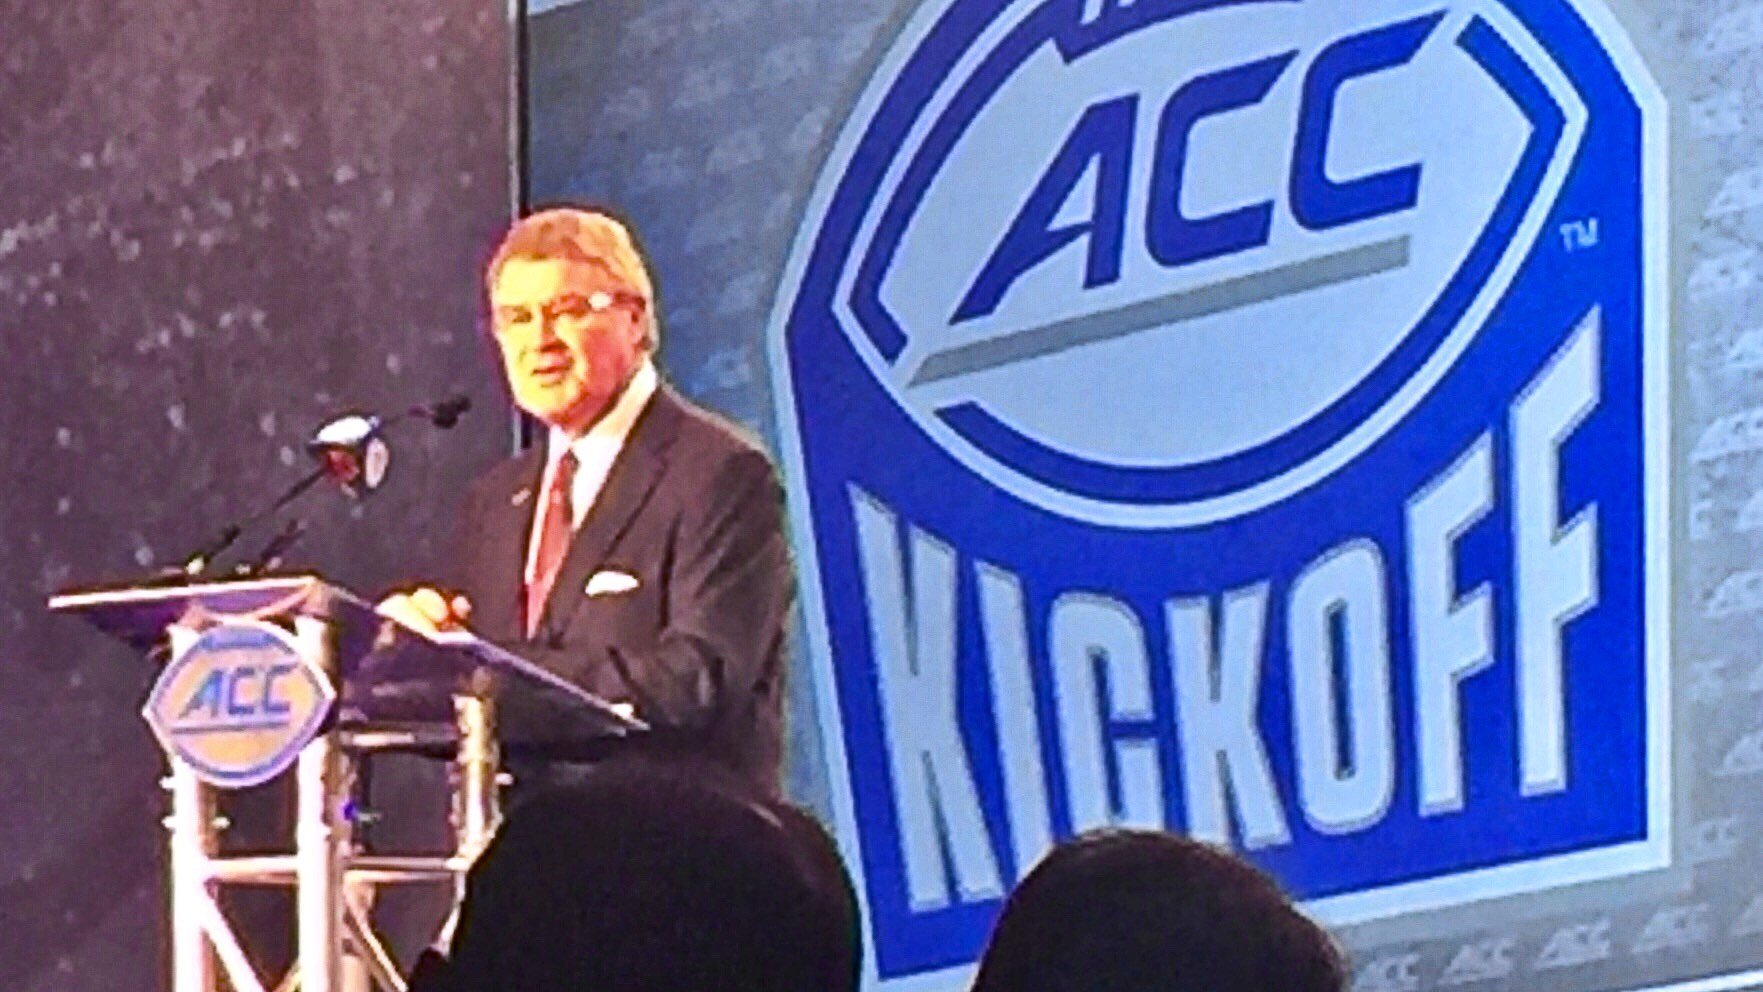 ACC commissioner John Swofford kicks off ACC Football Media Days. (WDRB photo by Eric Crawford)